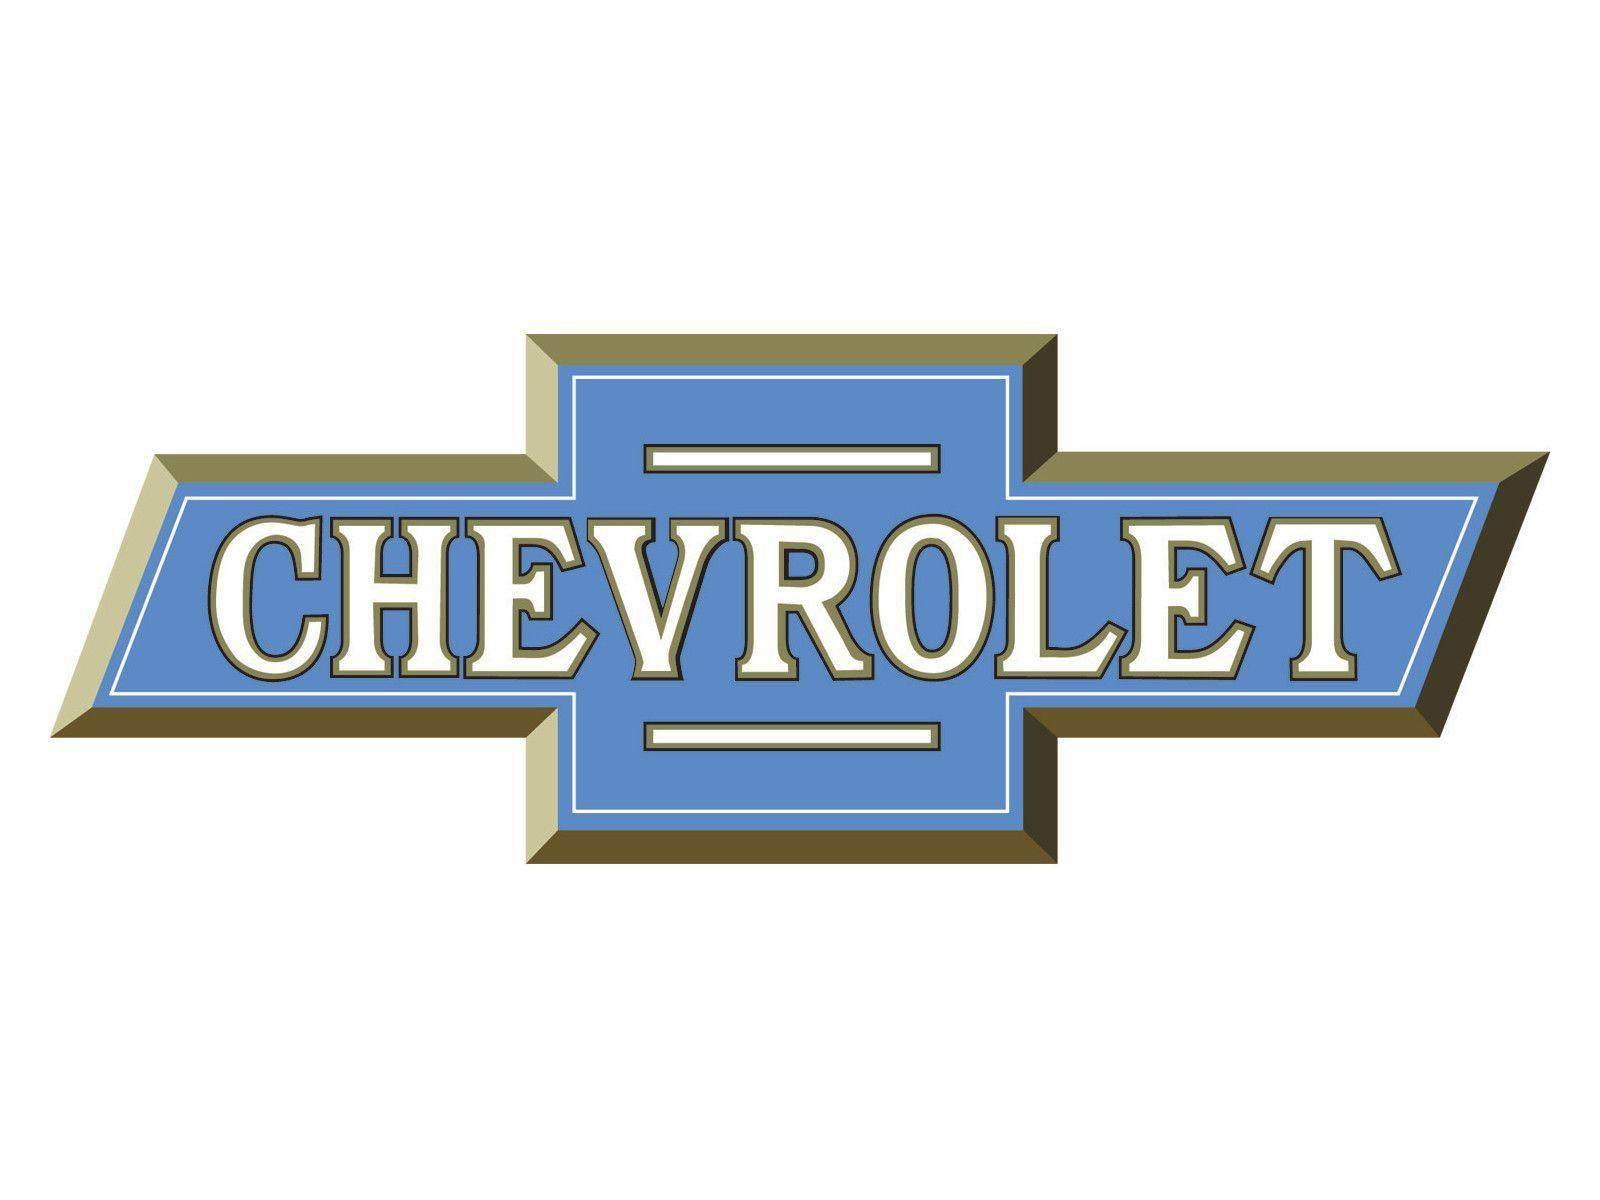 Chevrolet Logo 26 157813 Image HD Wallpapers